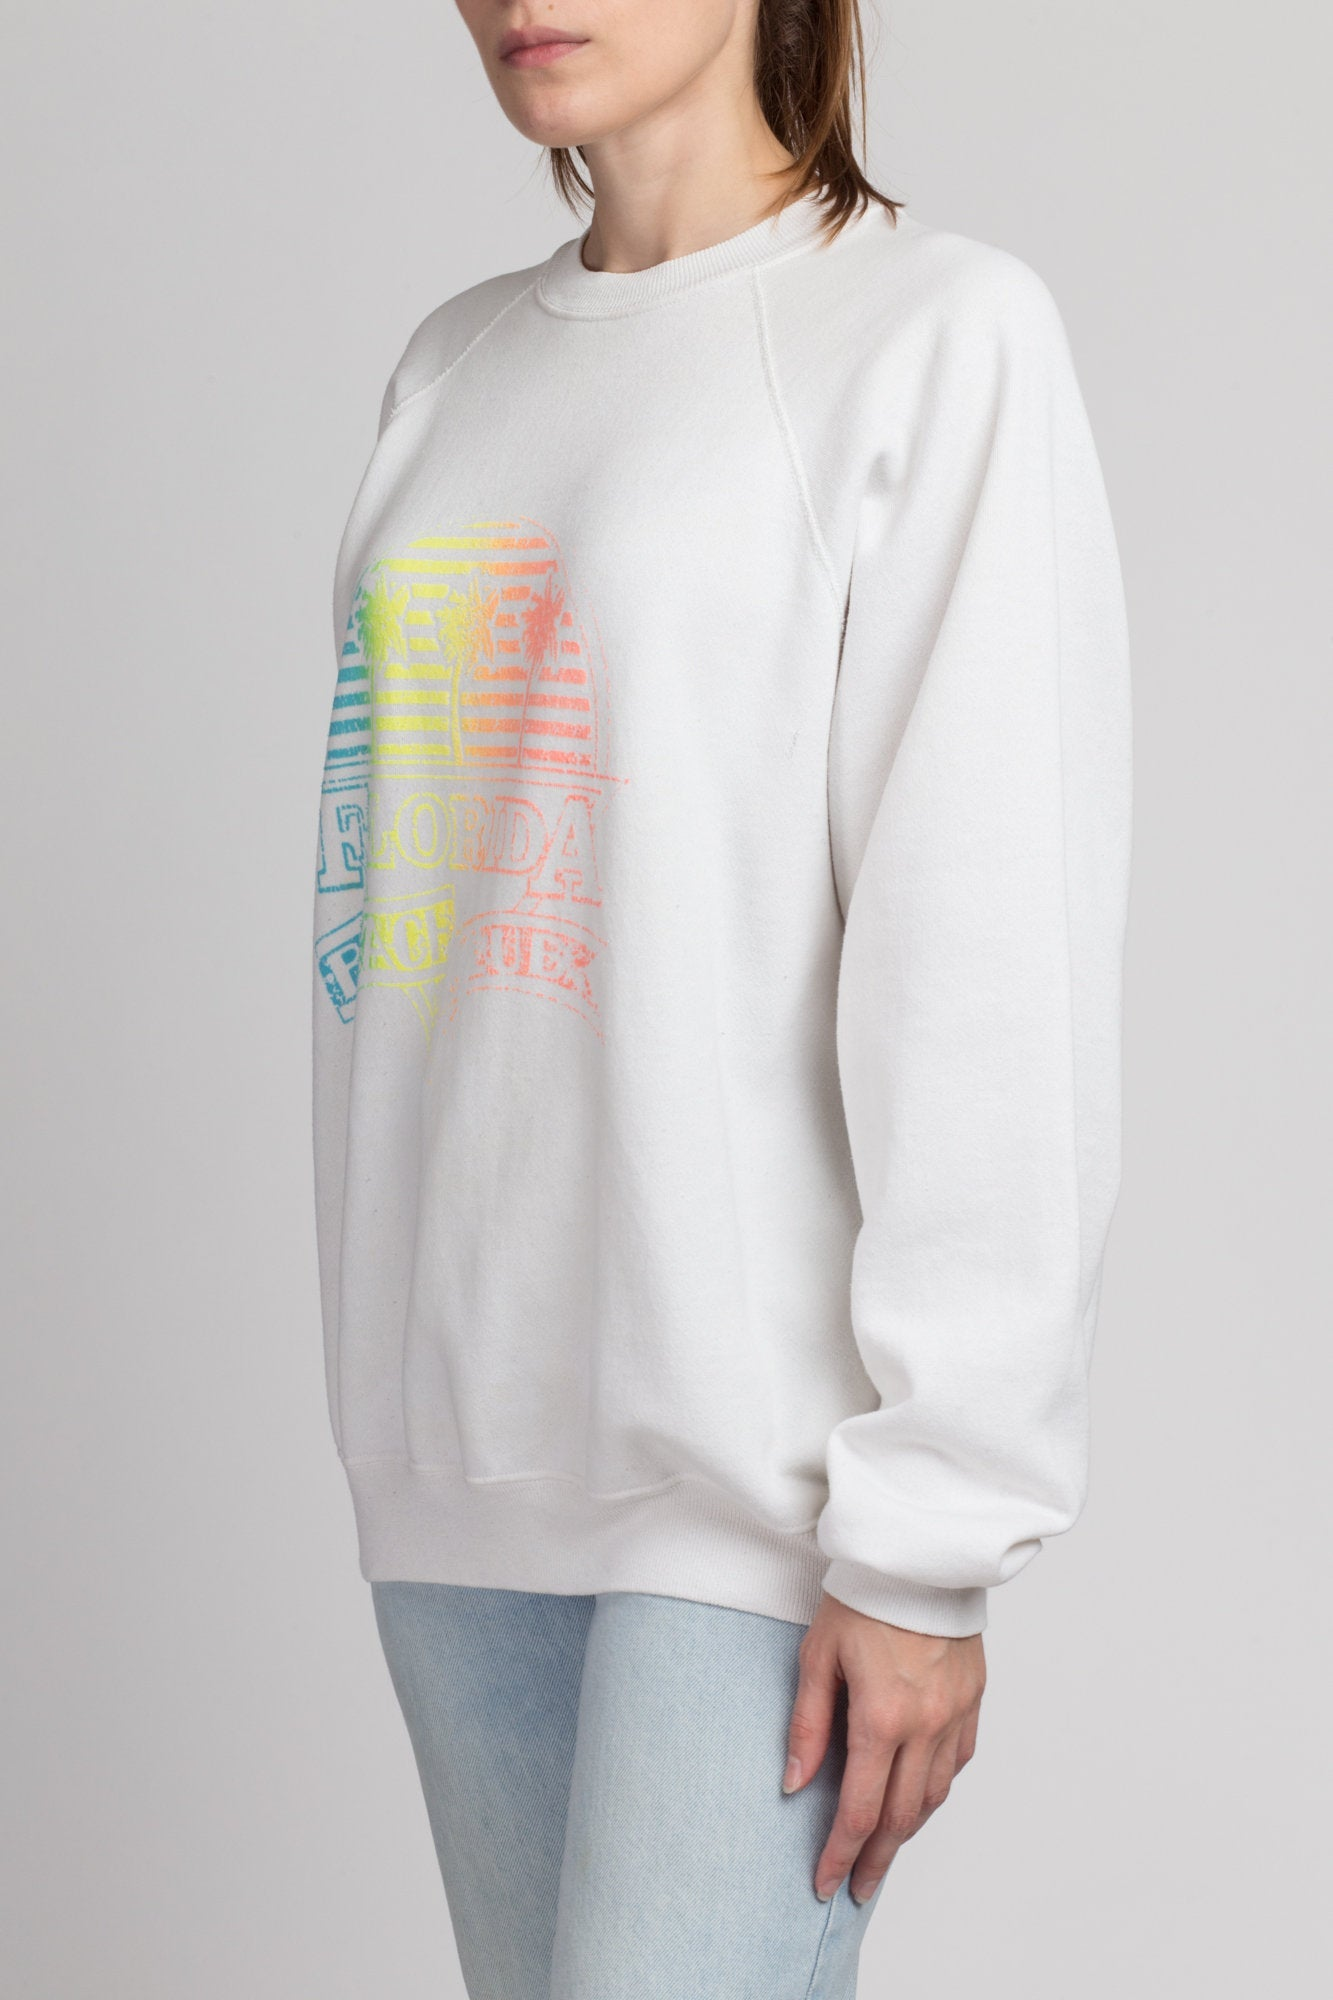 80s Florida Beach Week Sweatshirt - Extra Large